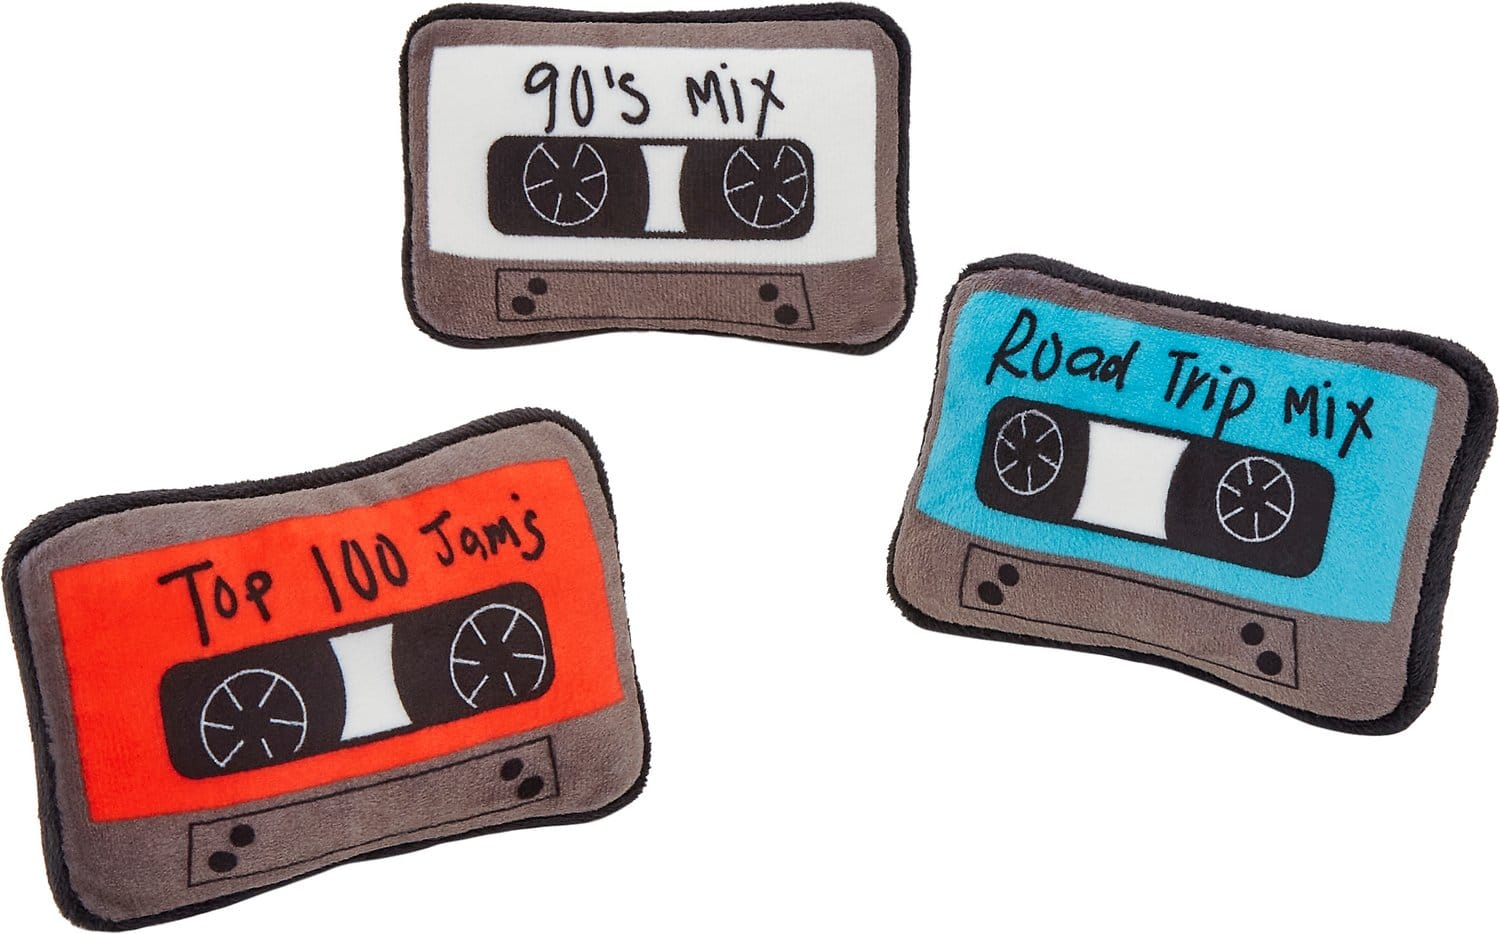 Three plush red, white and blue dog toy mix tapes